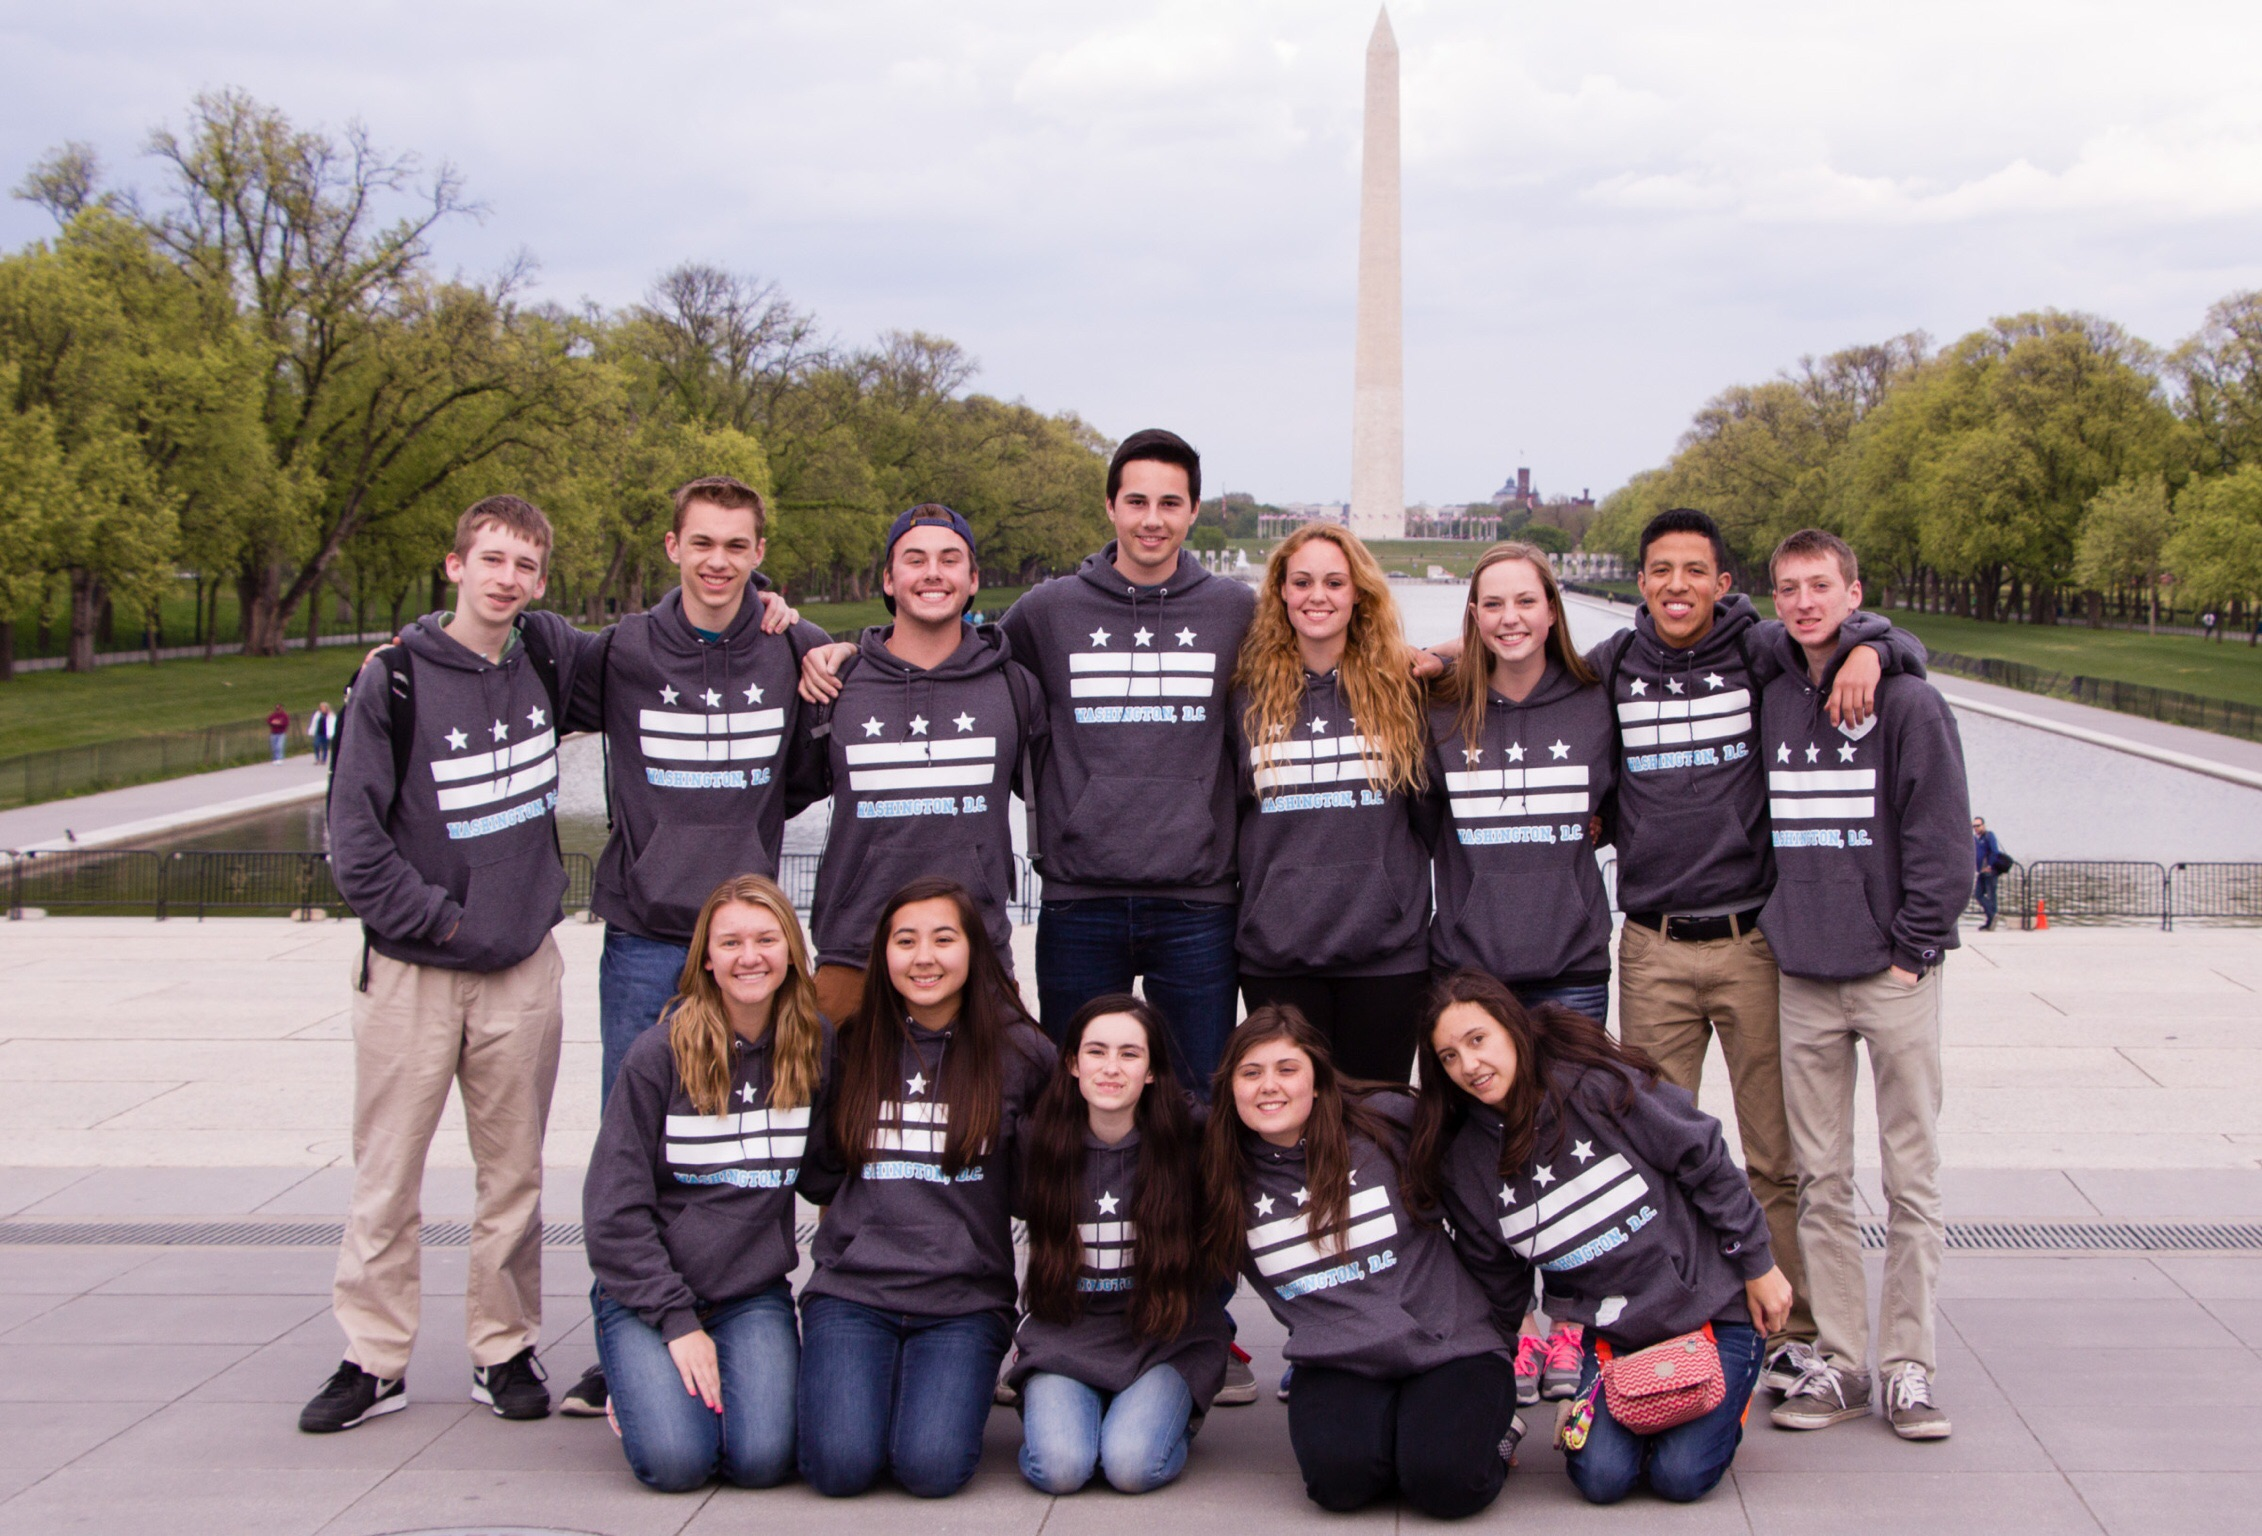 Custom t shirts for class trip to washington d c shirt for T shirts printing washington dc